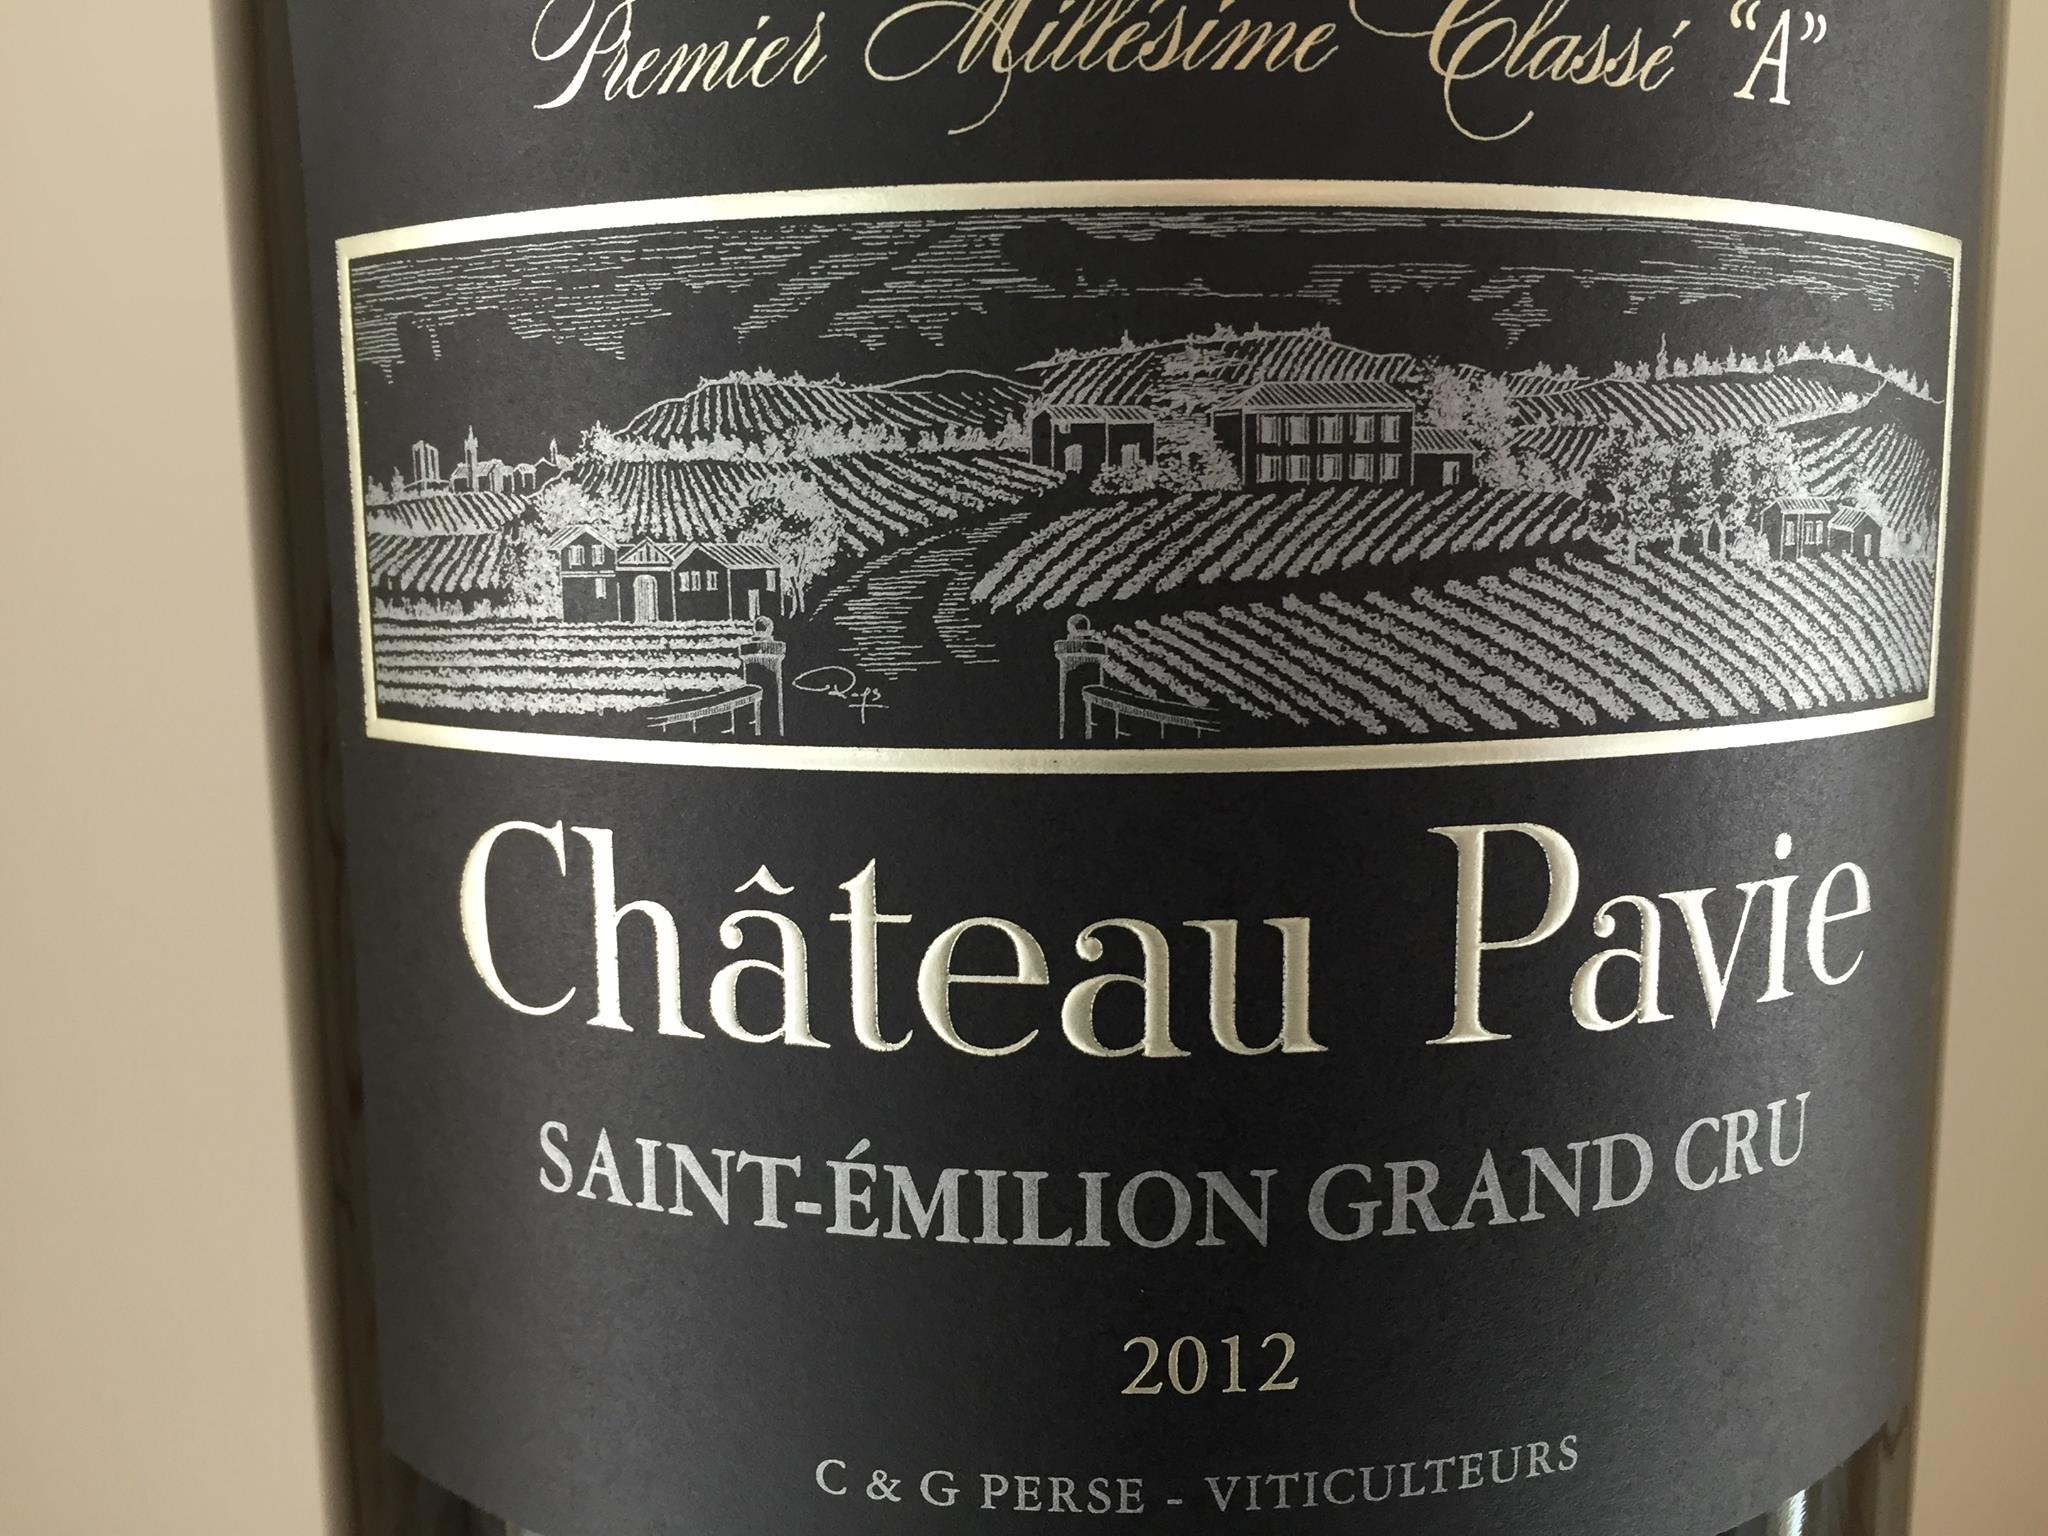 Château Pavie 2015 – Saint-Emilion Grand Cru, 1er Grand Cru Classé A